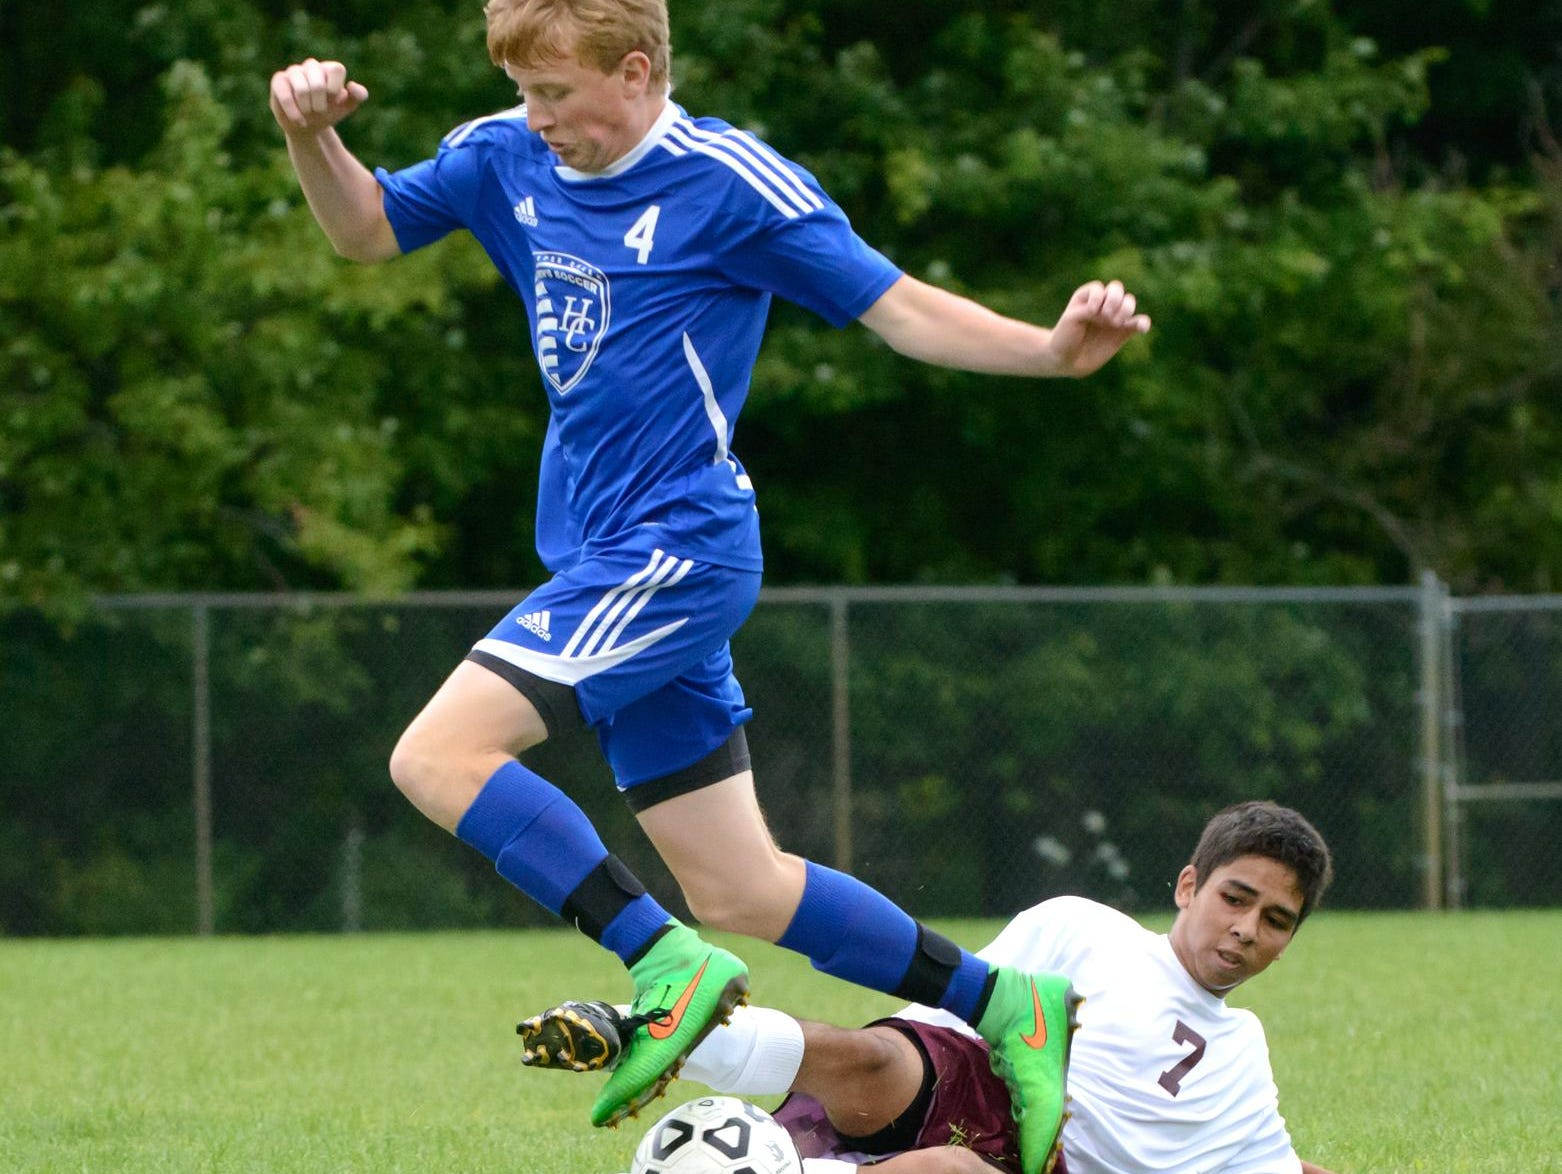 Nick Robinson (4) of Harper Creek gets tripped up by Delton Kellogg's Tristan Arce as Robinson was going for the ball.